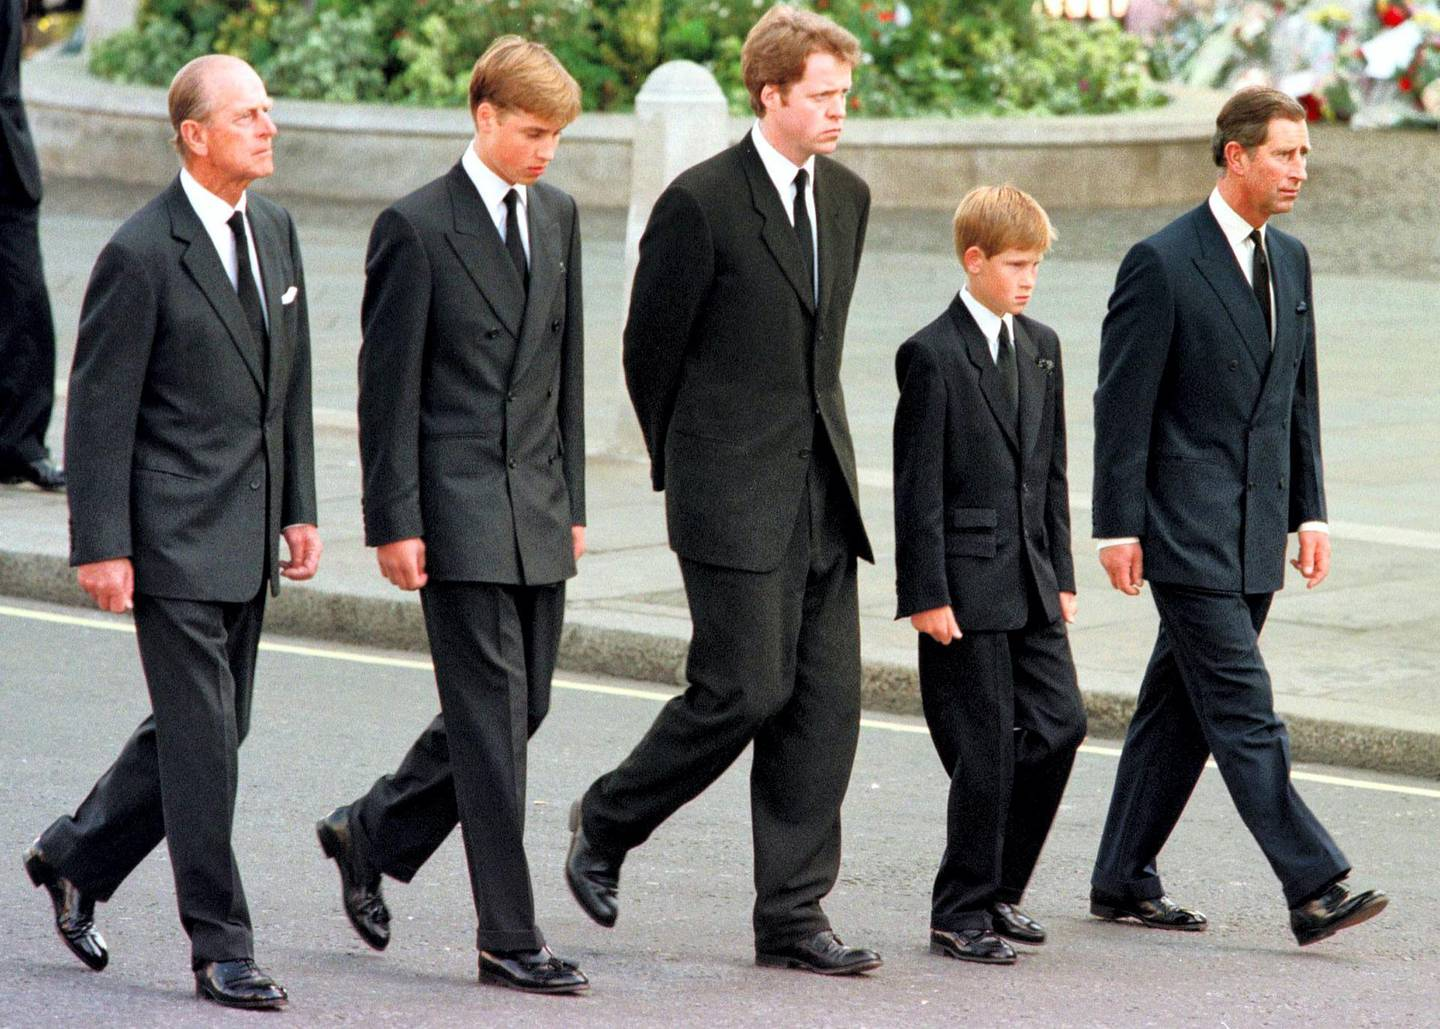 (L to R) The Duke of Edinburgh, Prince William, Earl Spencer, Prince Harry and Prince Charles walk outside Westminster Abbey during the funeral service for Diana, Princess of Wales, 06 September. Hundreds of thousands of mourners lined the streets of Central London to watch the funeral procession. The Princess died last week in a car crash in Paris. / AFP PHOTO / RTR/WPA POOL / JEFF J. MITCHELL